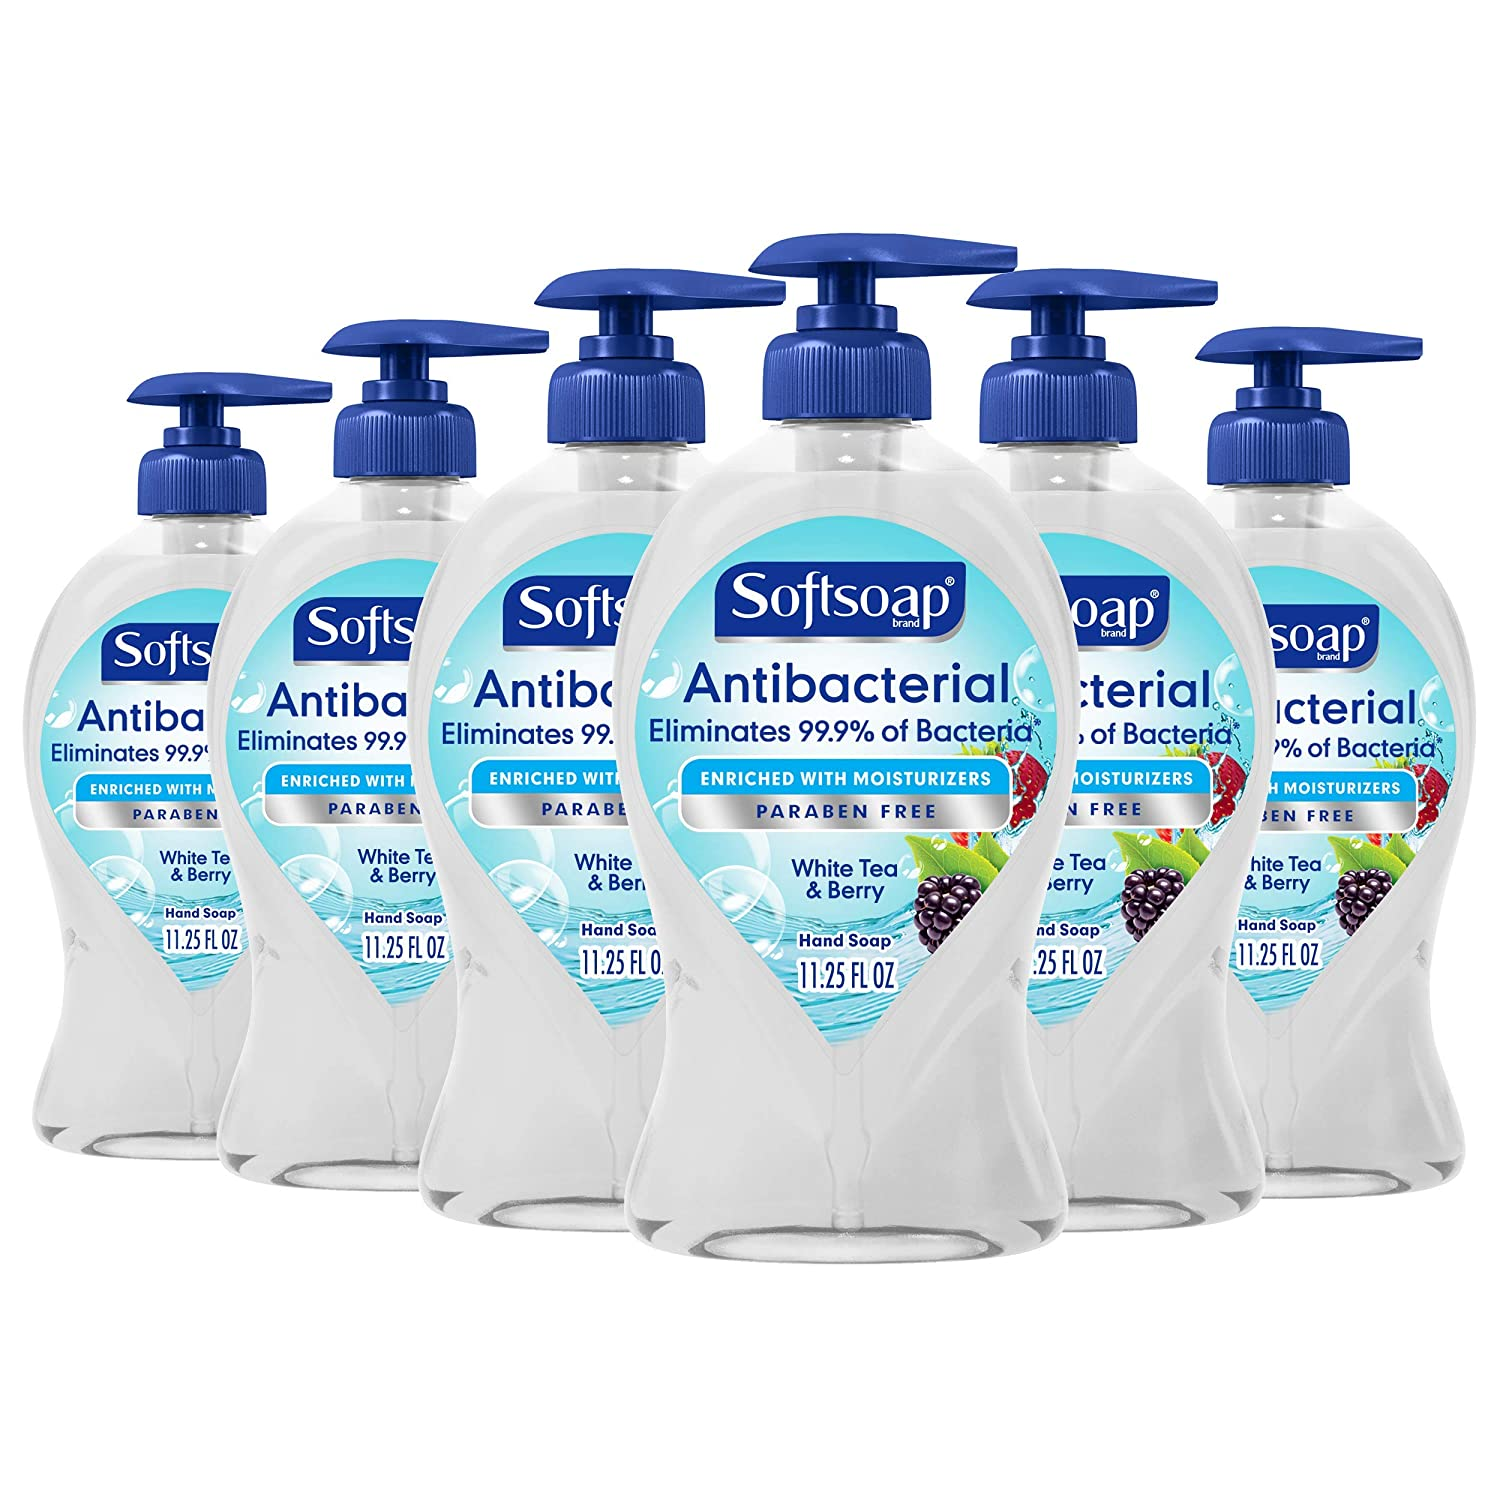 Softsoap Antibacterial Liquid Hand Soap, Crisp Clean - 11.25 fluid ounces, 6-Pack